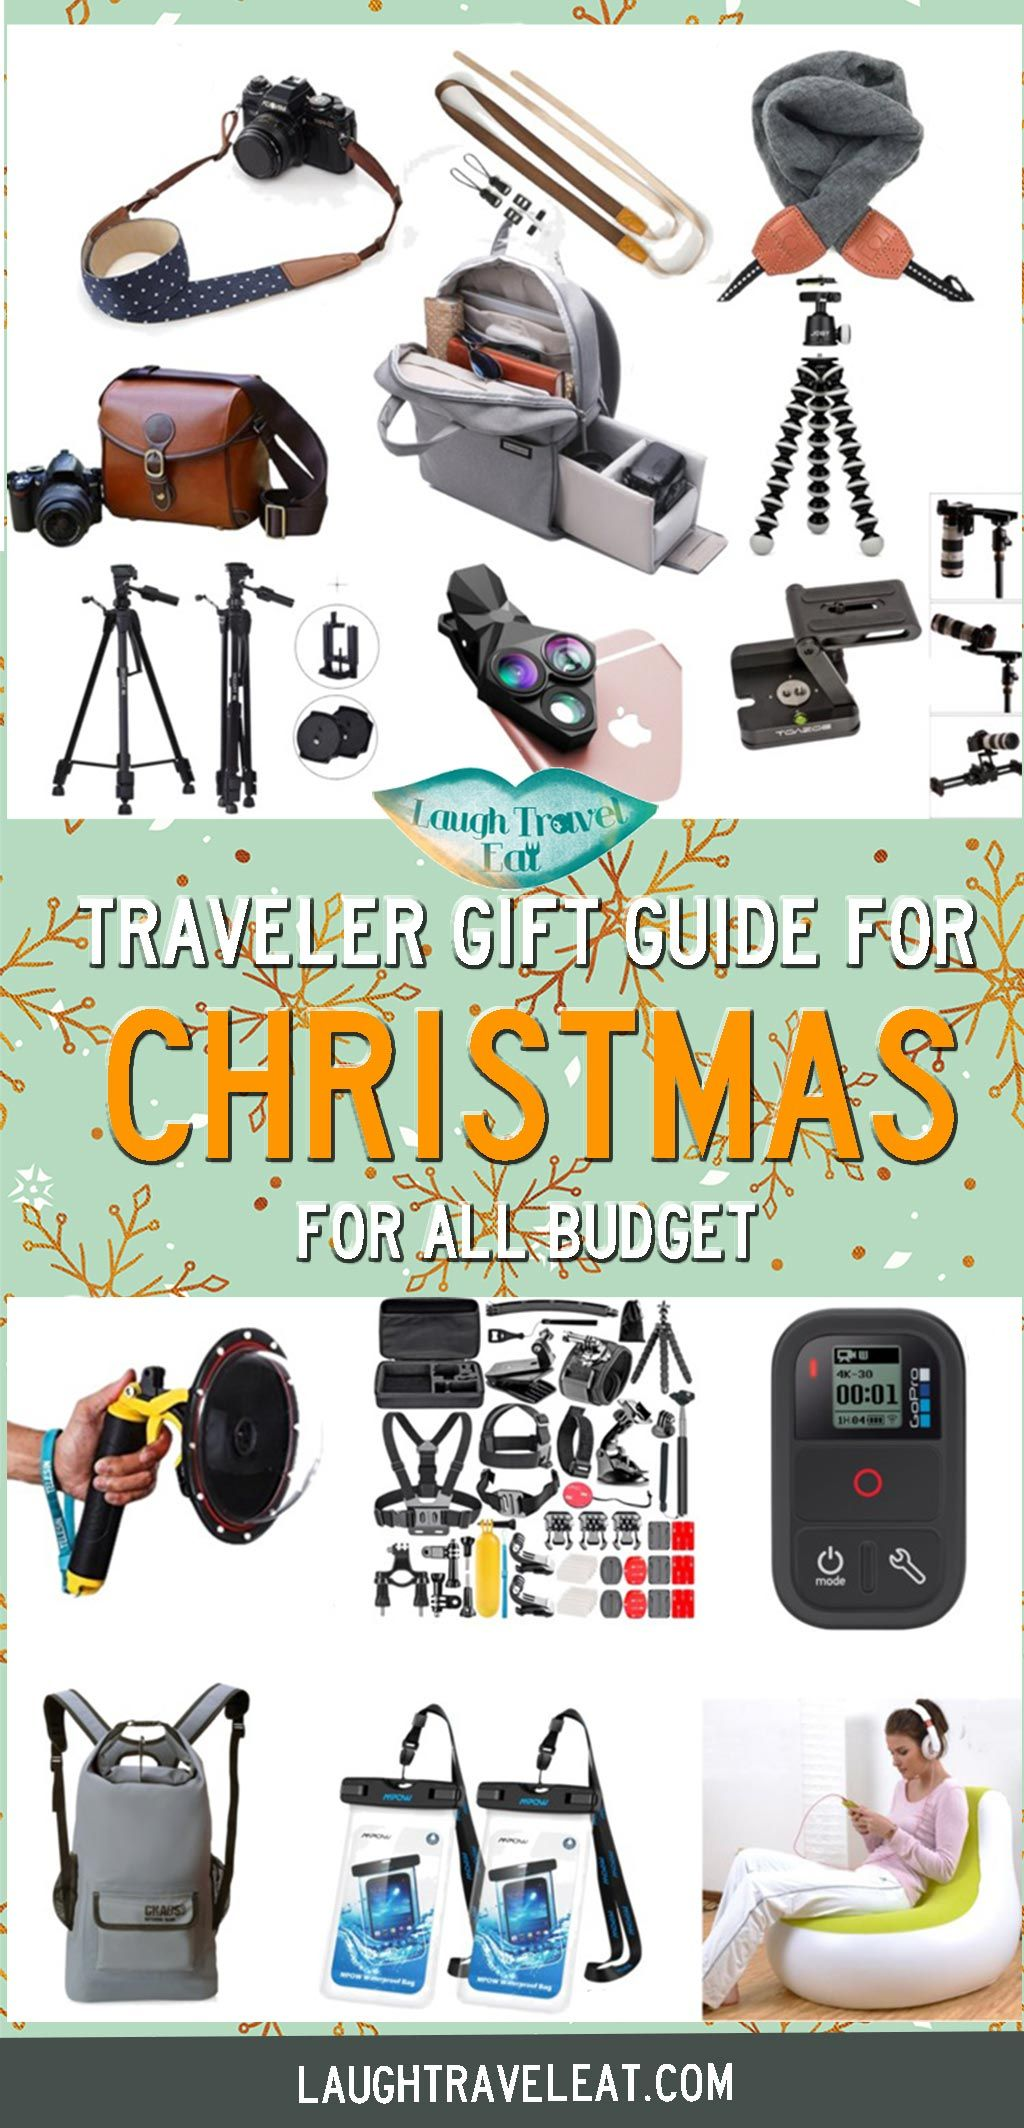 Christmas Gift Guide For Camera Lover, Adventurers, Innovation Keen Beans